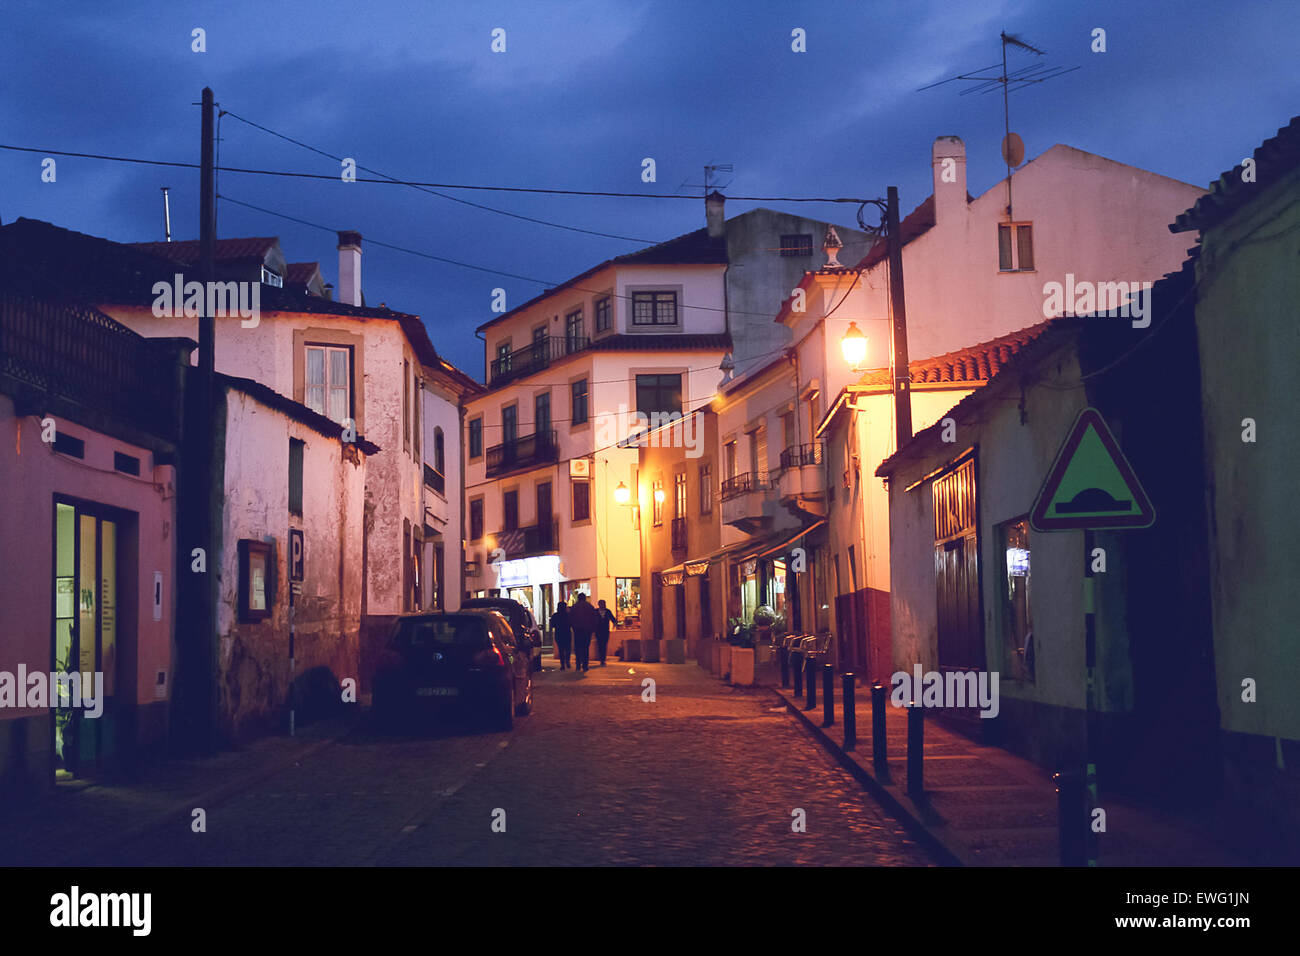 People Walking on City Street at Dusk Architecture City Street Streetlight buildings dusk group night outdoor sky - Stock Image